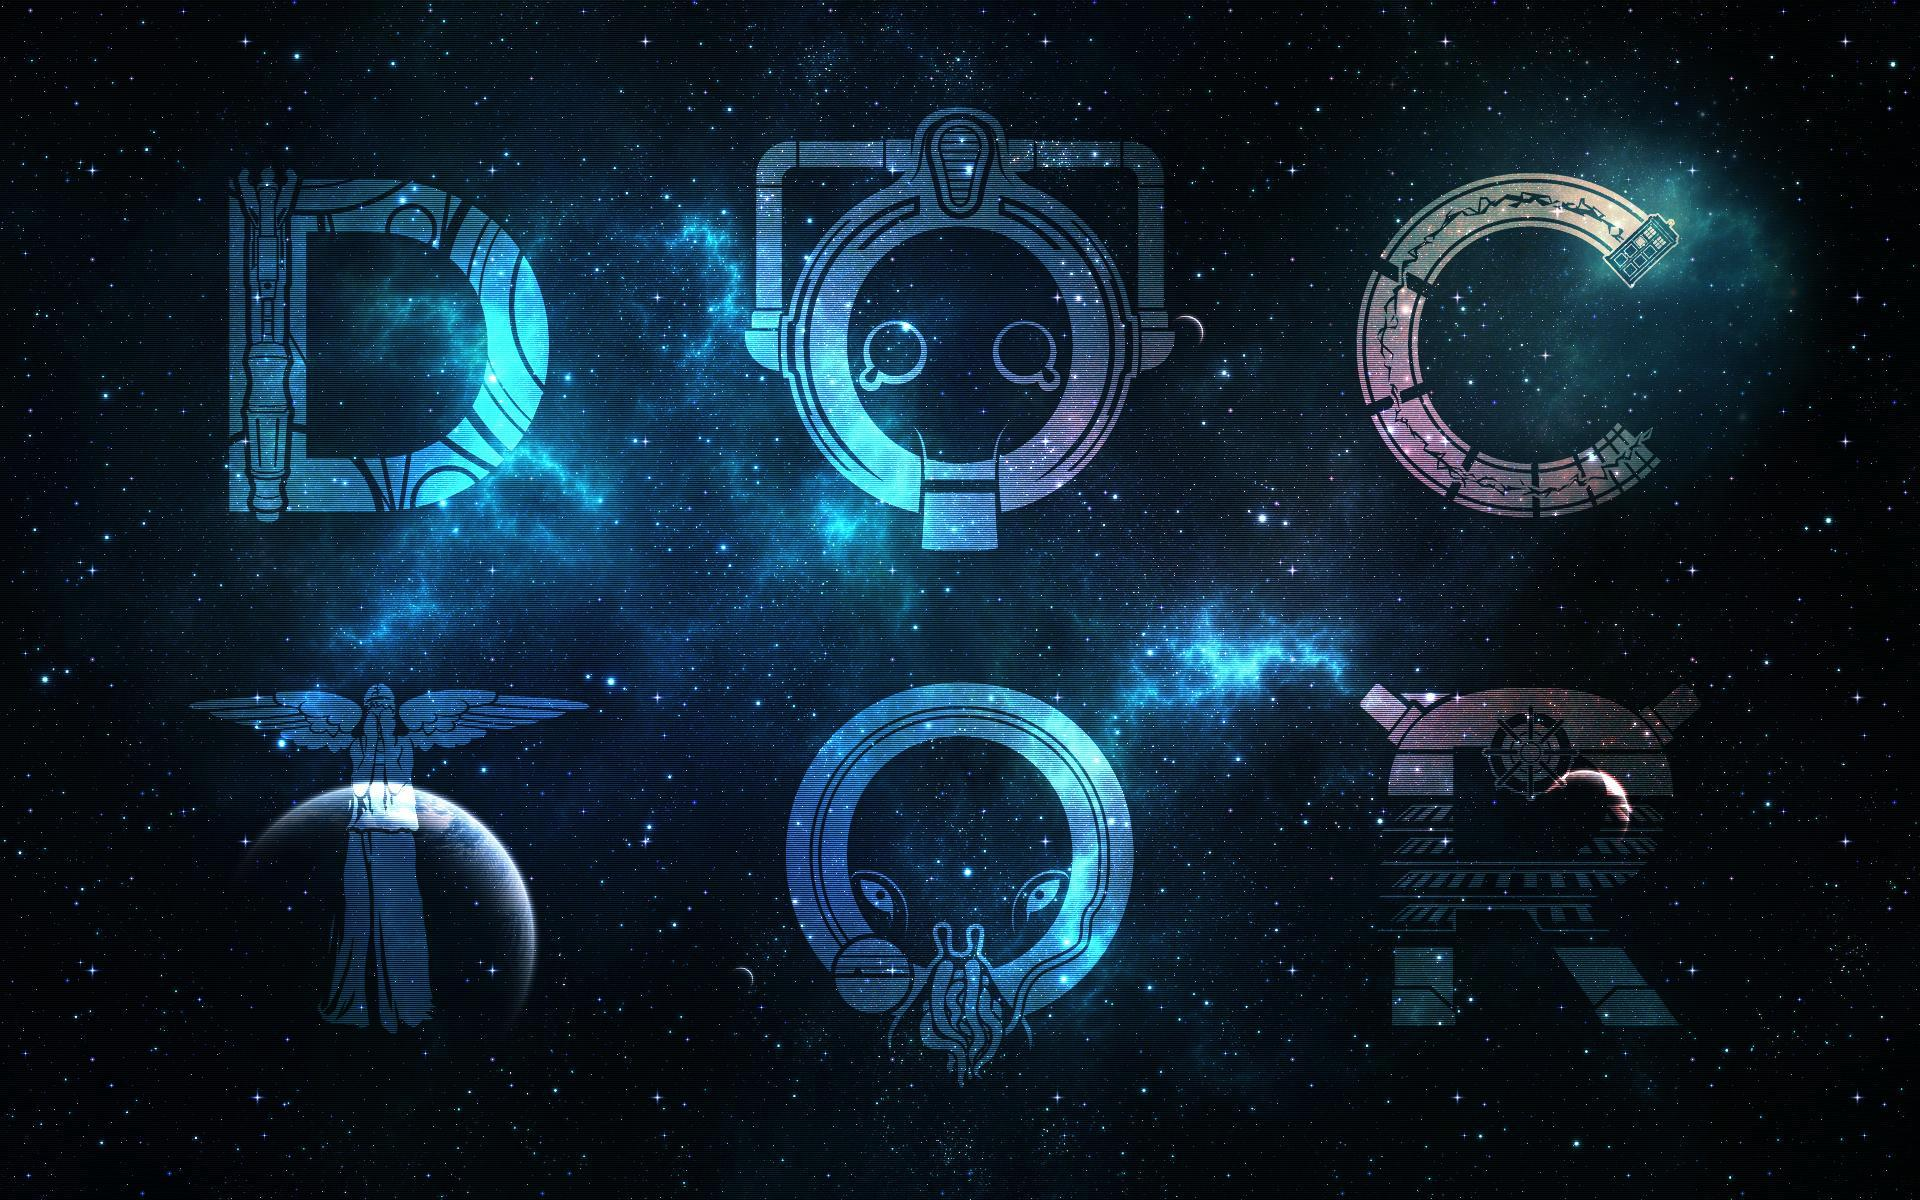 Doctor Who Wallpapers 1920x1200